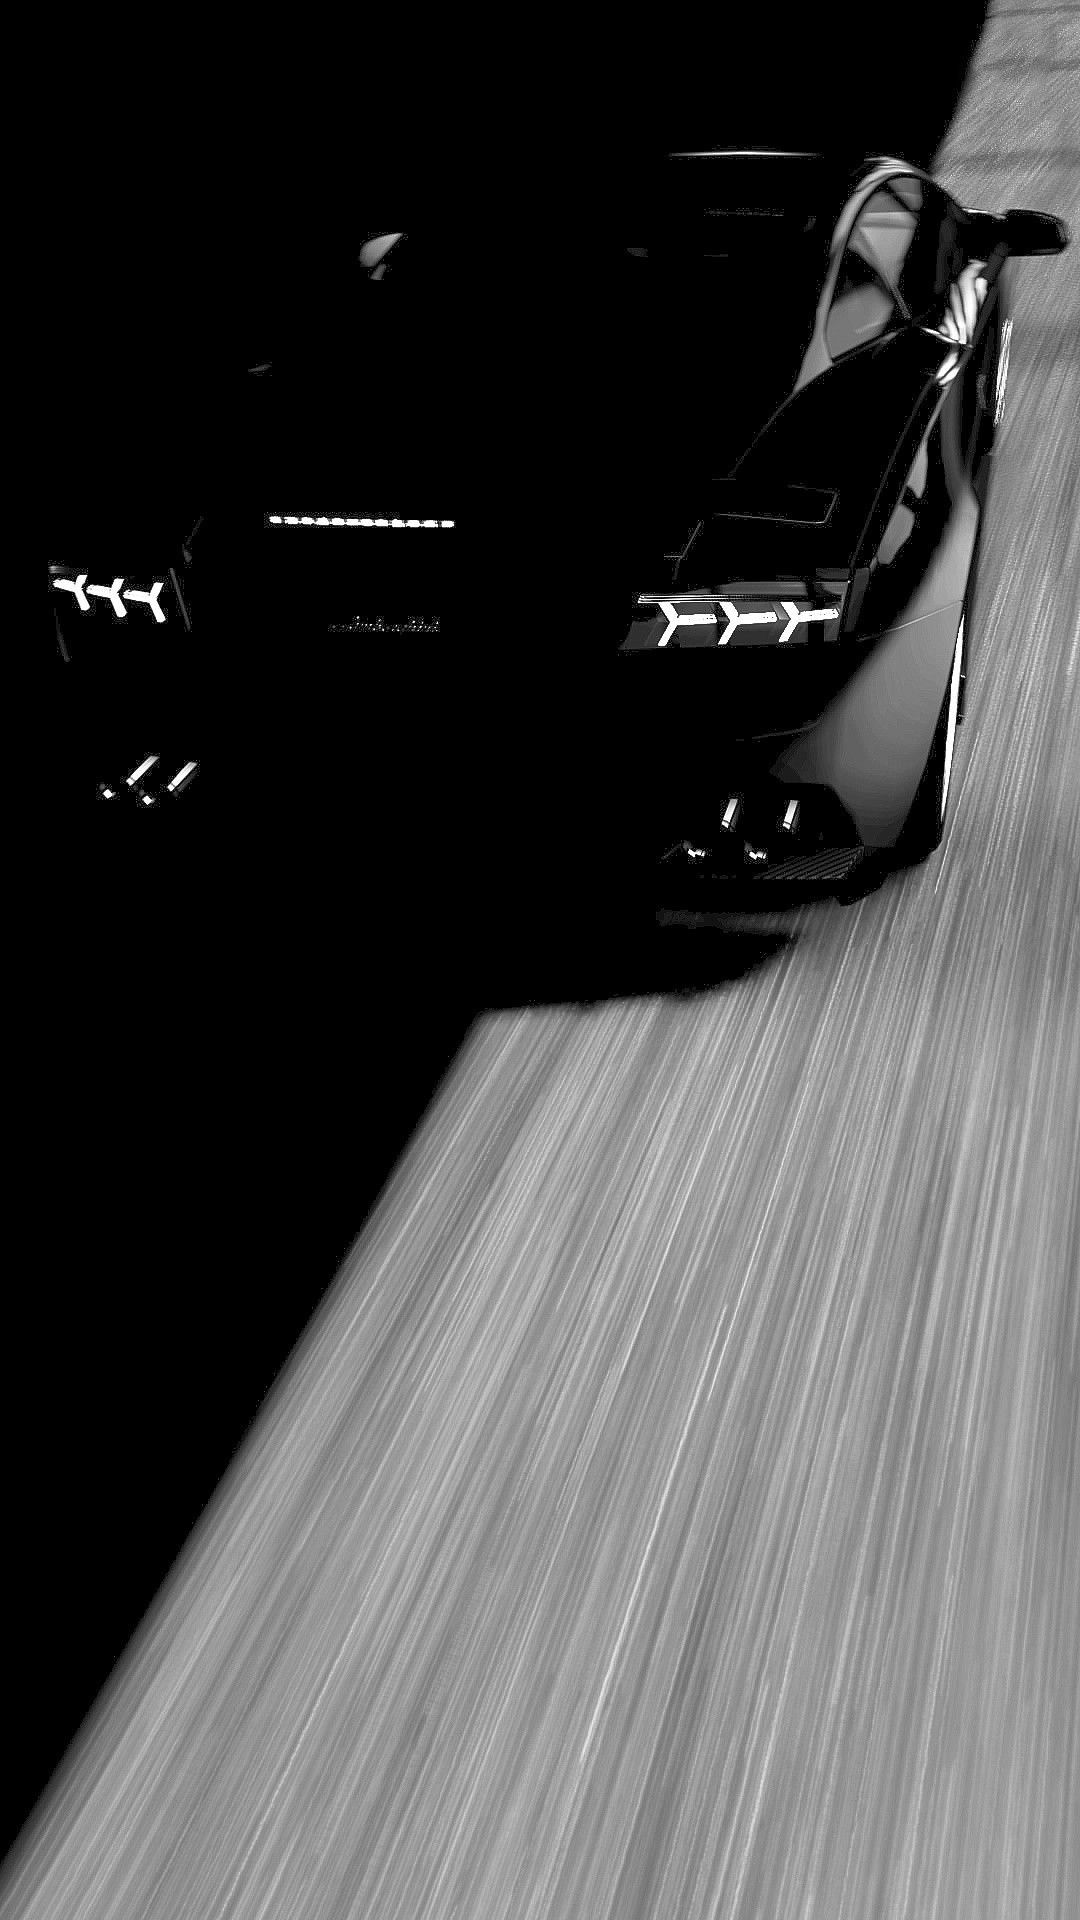 Dark Supercar Photo Is Best Wallpaper On Flowerswallpaper Info If You Like It Iphone Android Wallpaper Dar In 2020 Car Wallpapers Super Cars Car Iphone Wallpaper